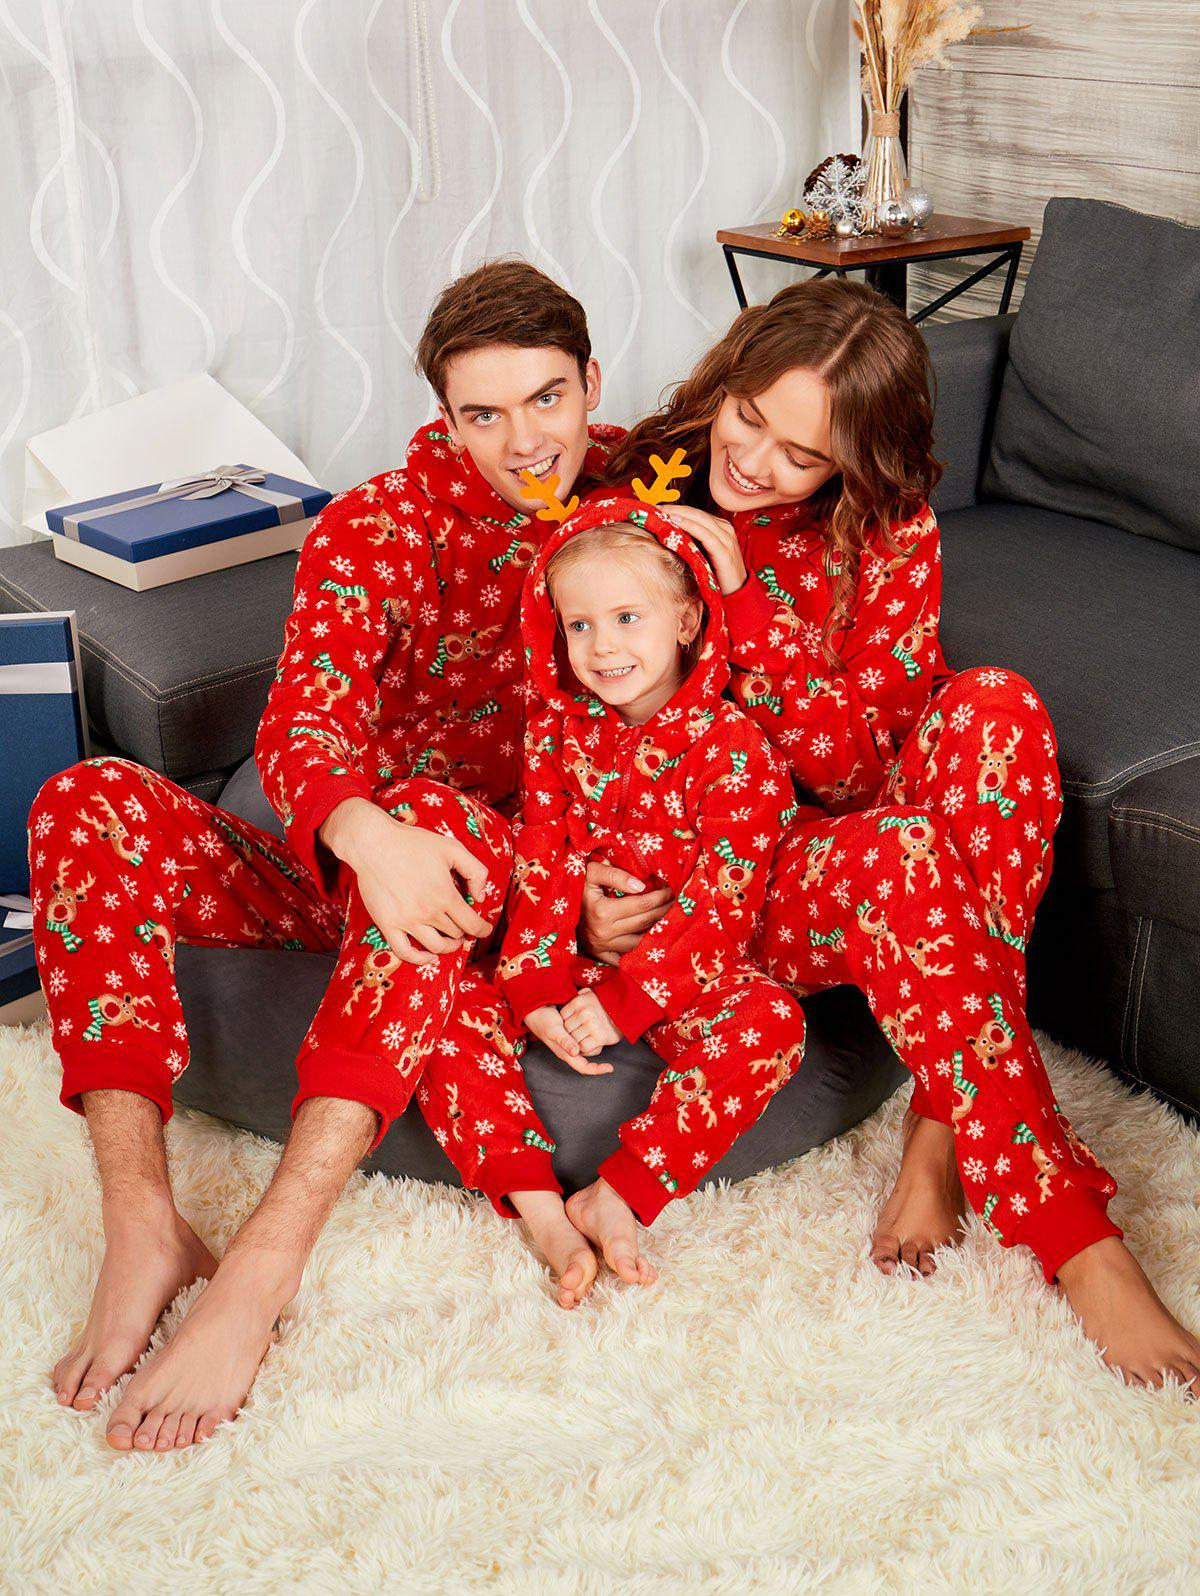 https://www.rosegal.com/pajamas/rudolph-matching-christmas-family-pajama-1515682.html?lkid=11415213